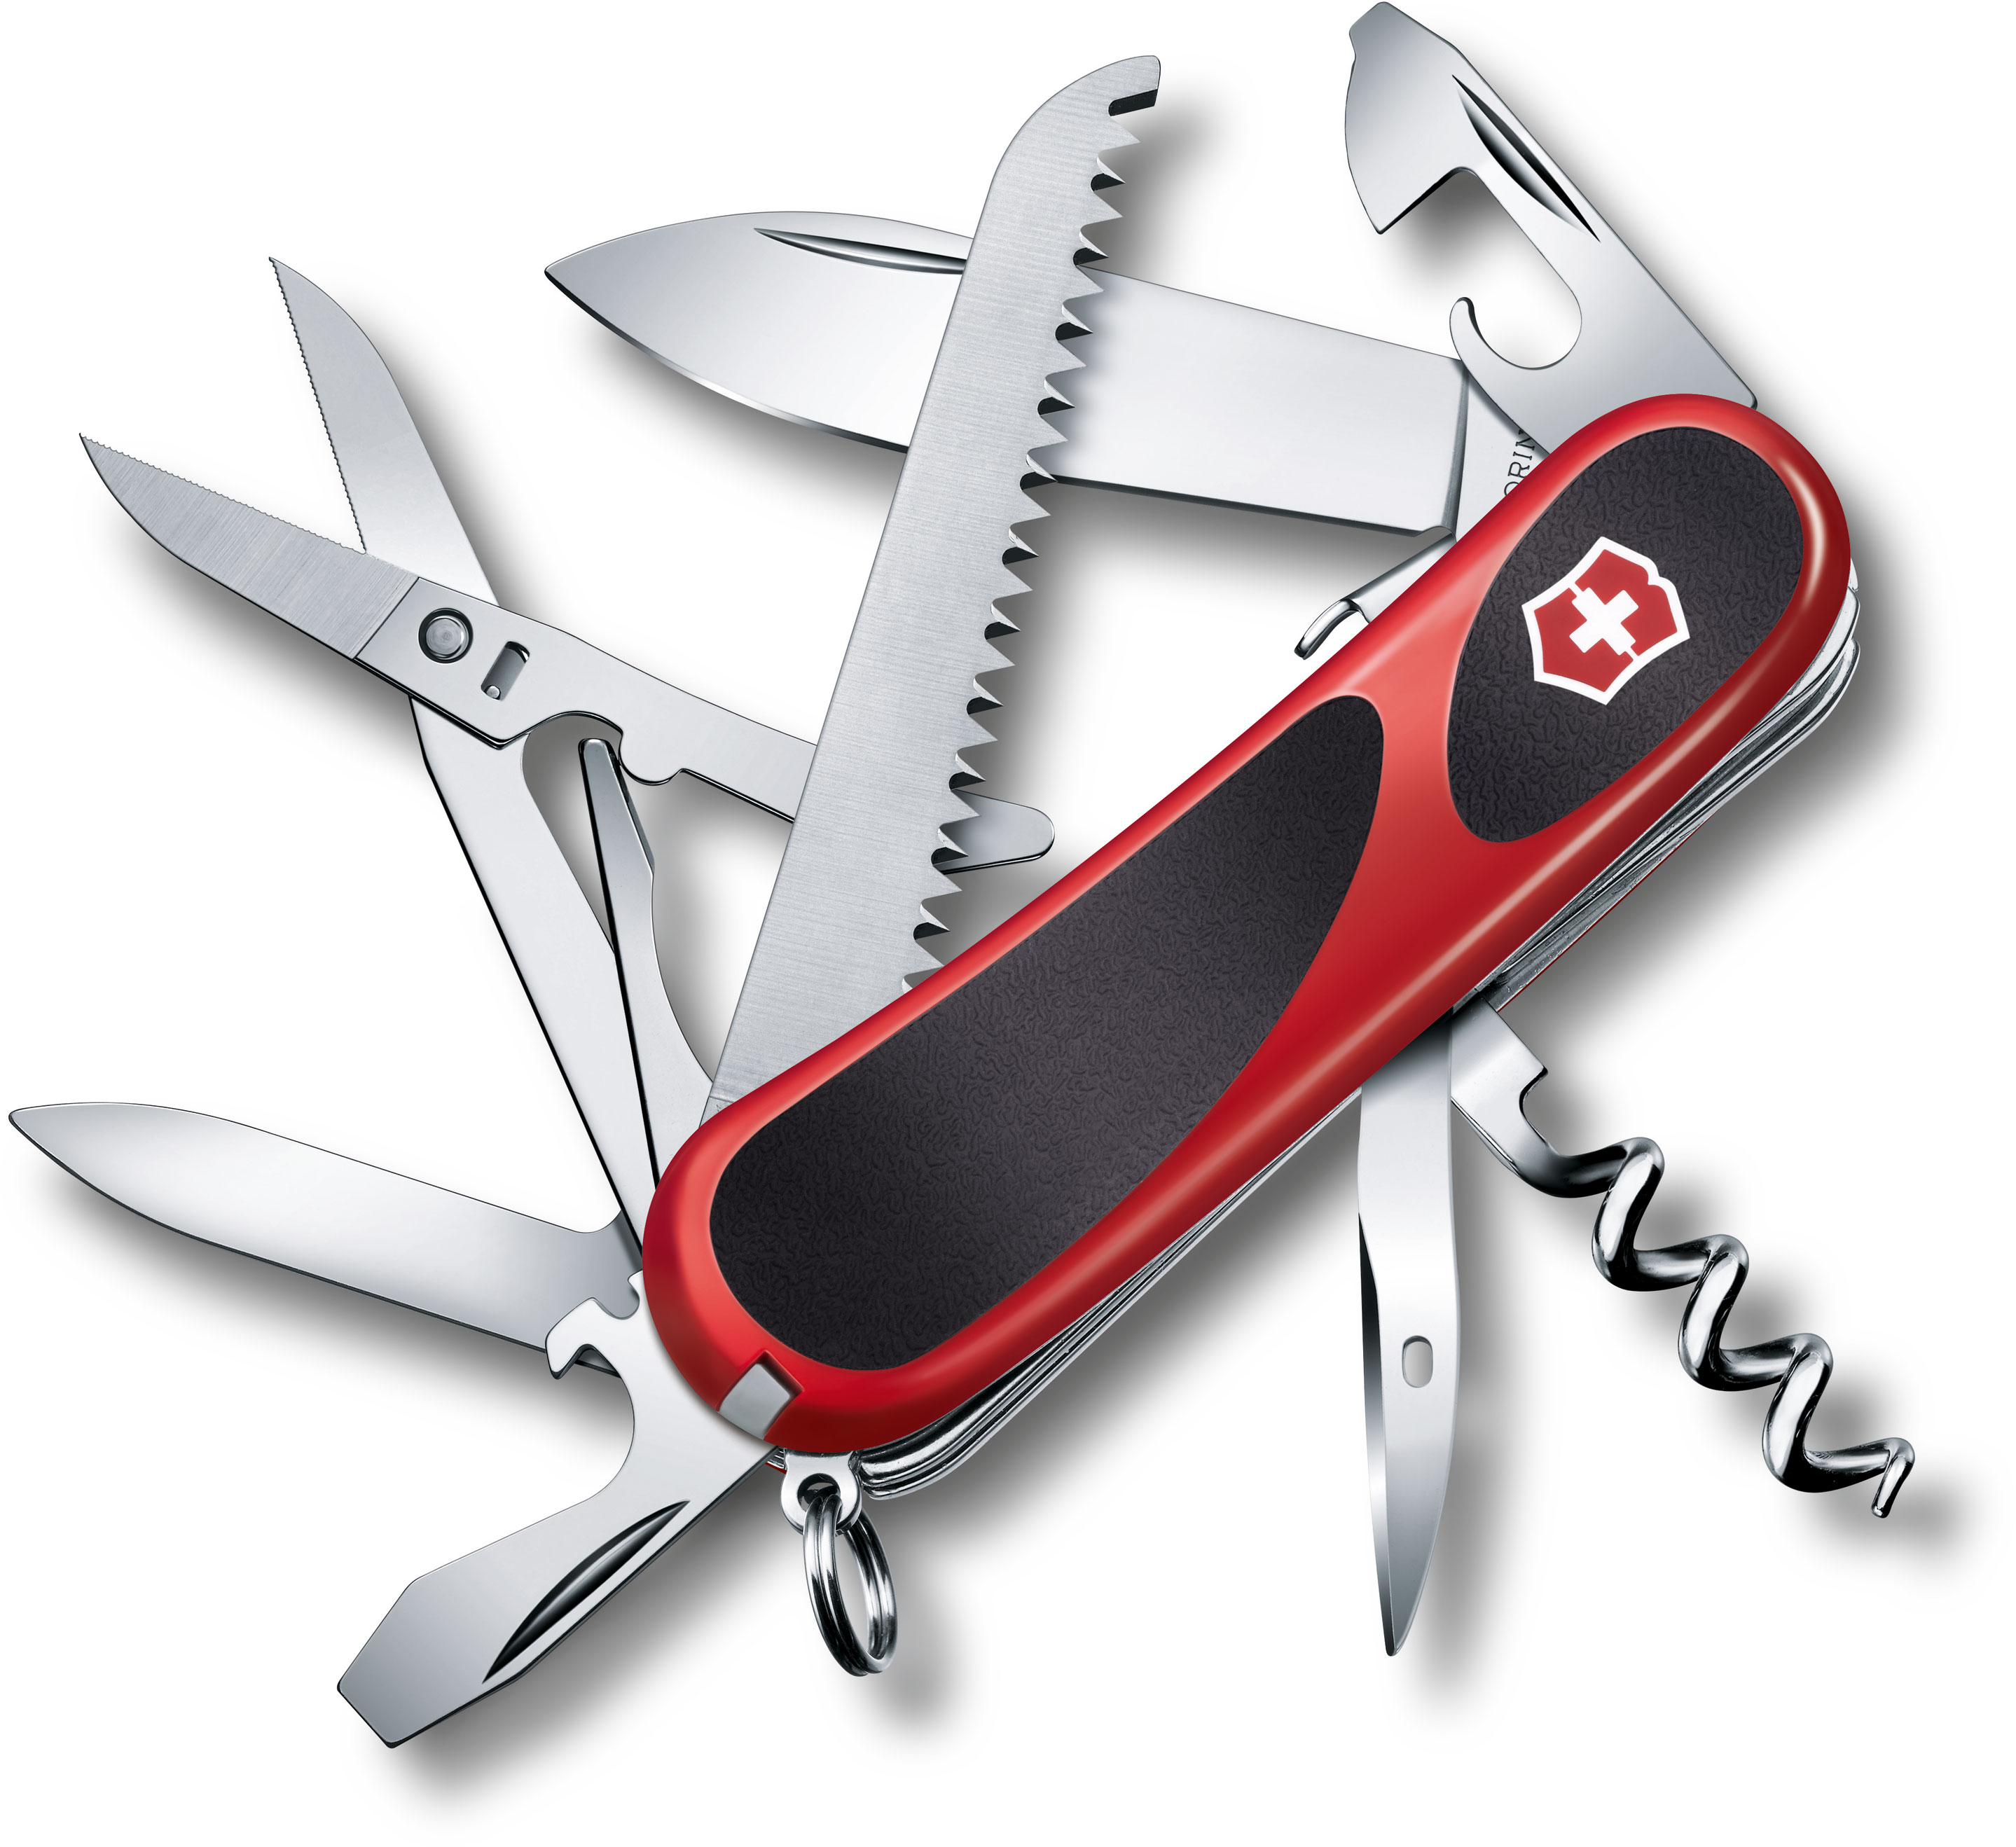 Buy Swiss Army EvoGrip at KnifeCenter